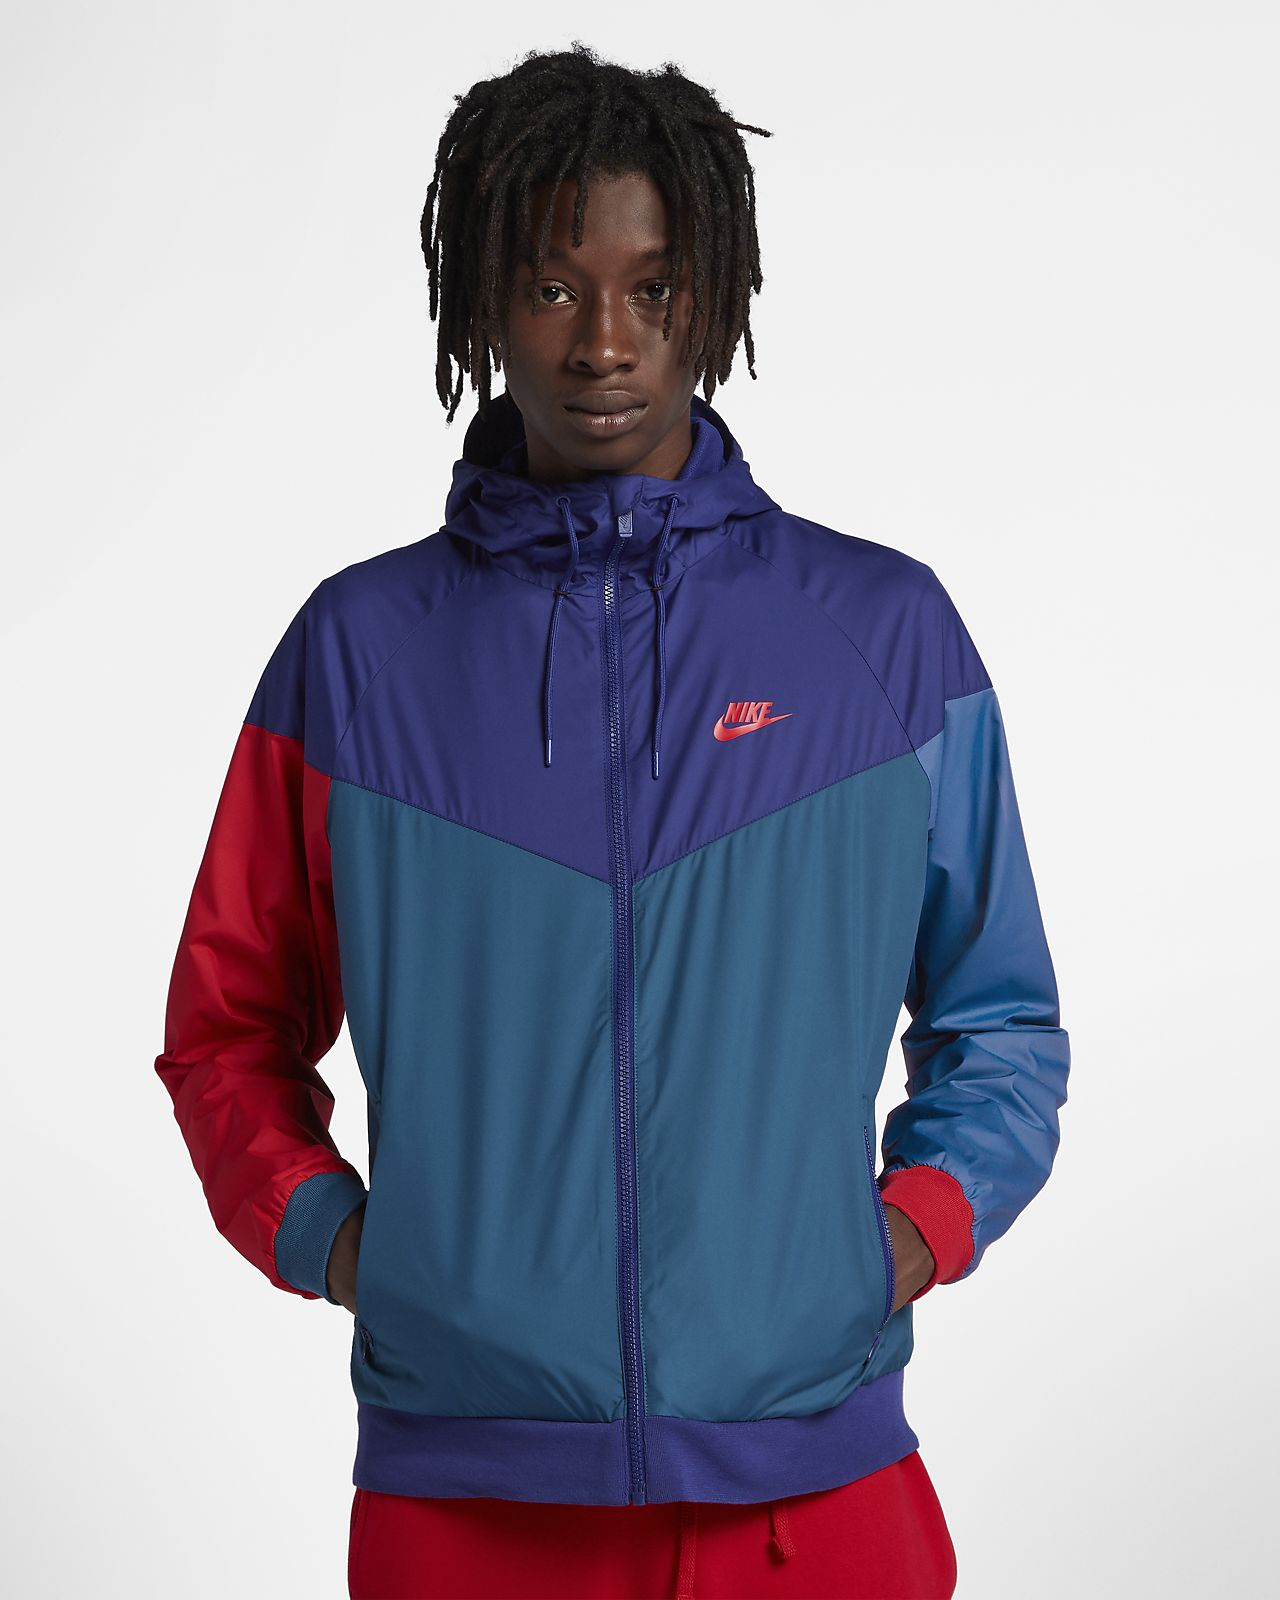 Low Resolution Nike Sportswear Windrunner Men s Jacket Nike Sportswear Windrunner  Men s Jacket 27e336e52